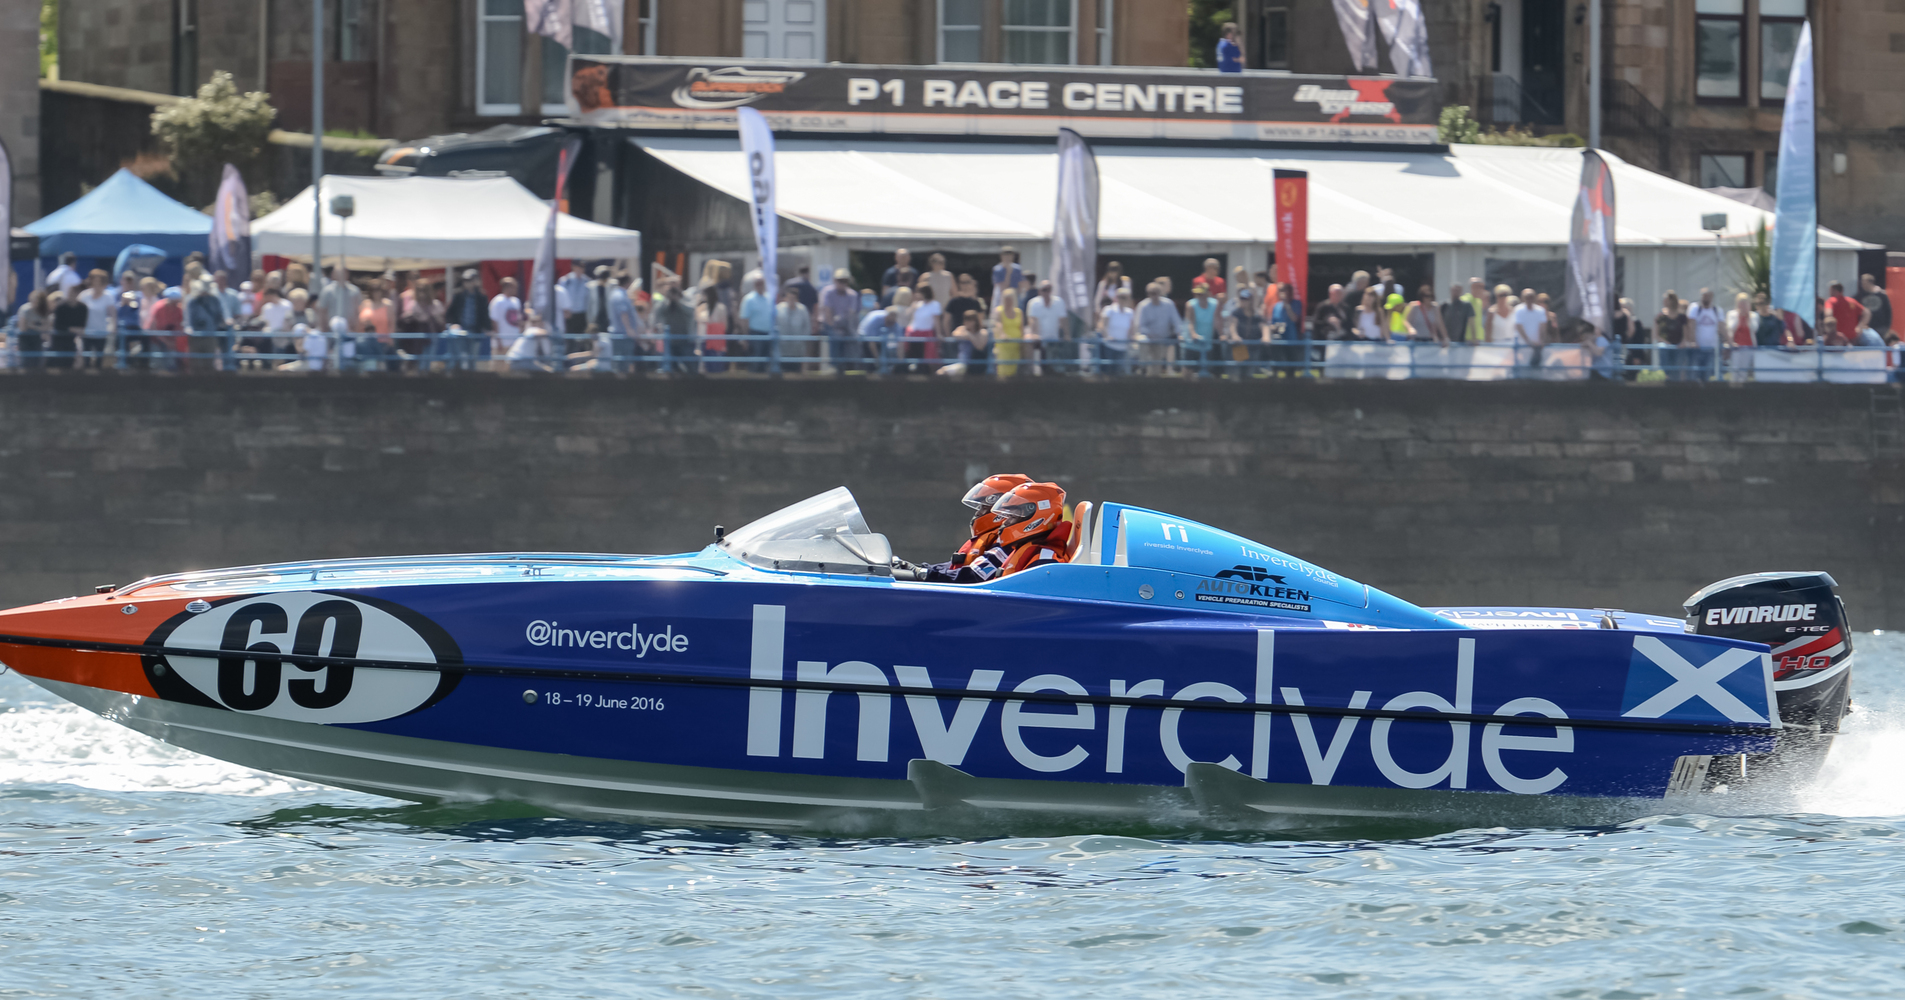 The Spirit of Inverclyde team made their debut last year and raced in front of a packed Greenock crowd